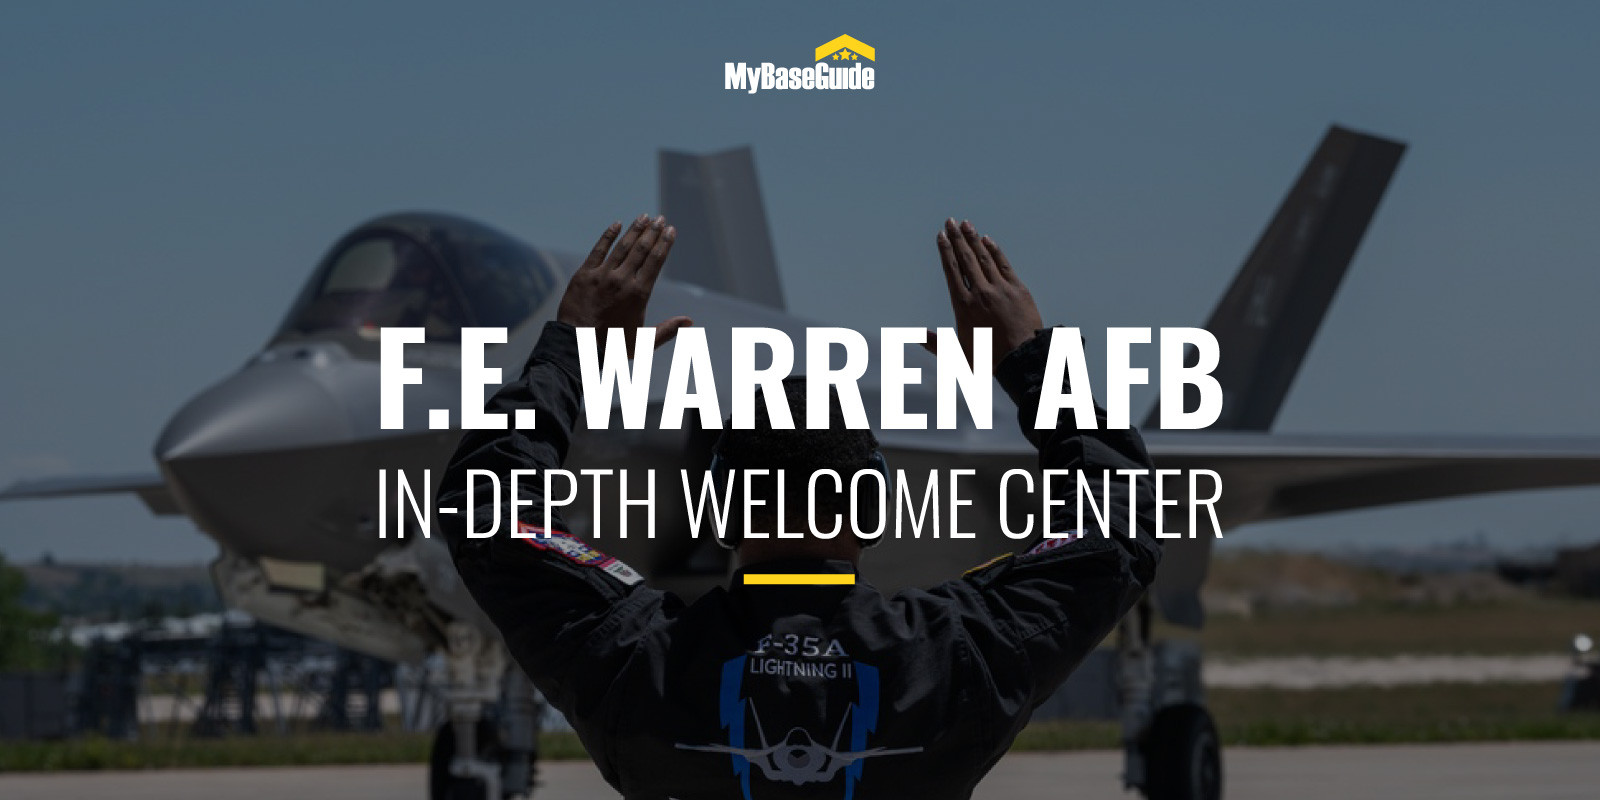 Francis E. Warren AFB: In-Depth Welcome Center